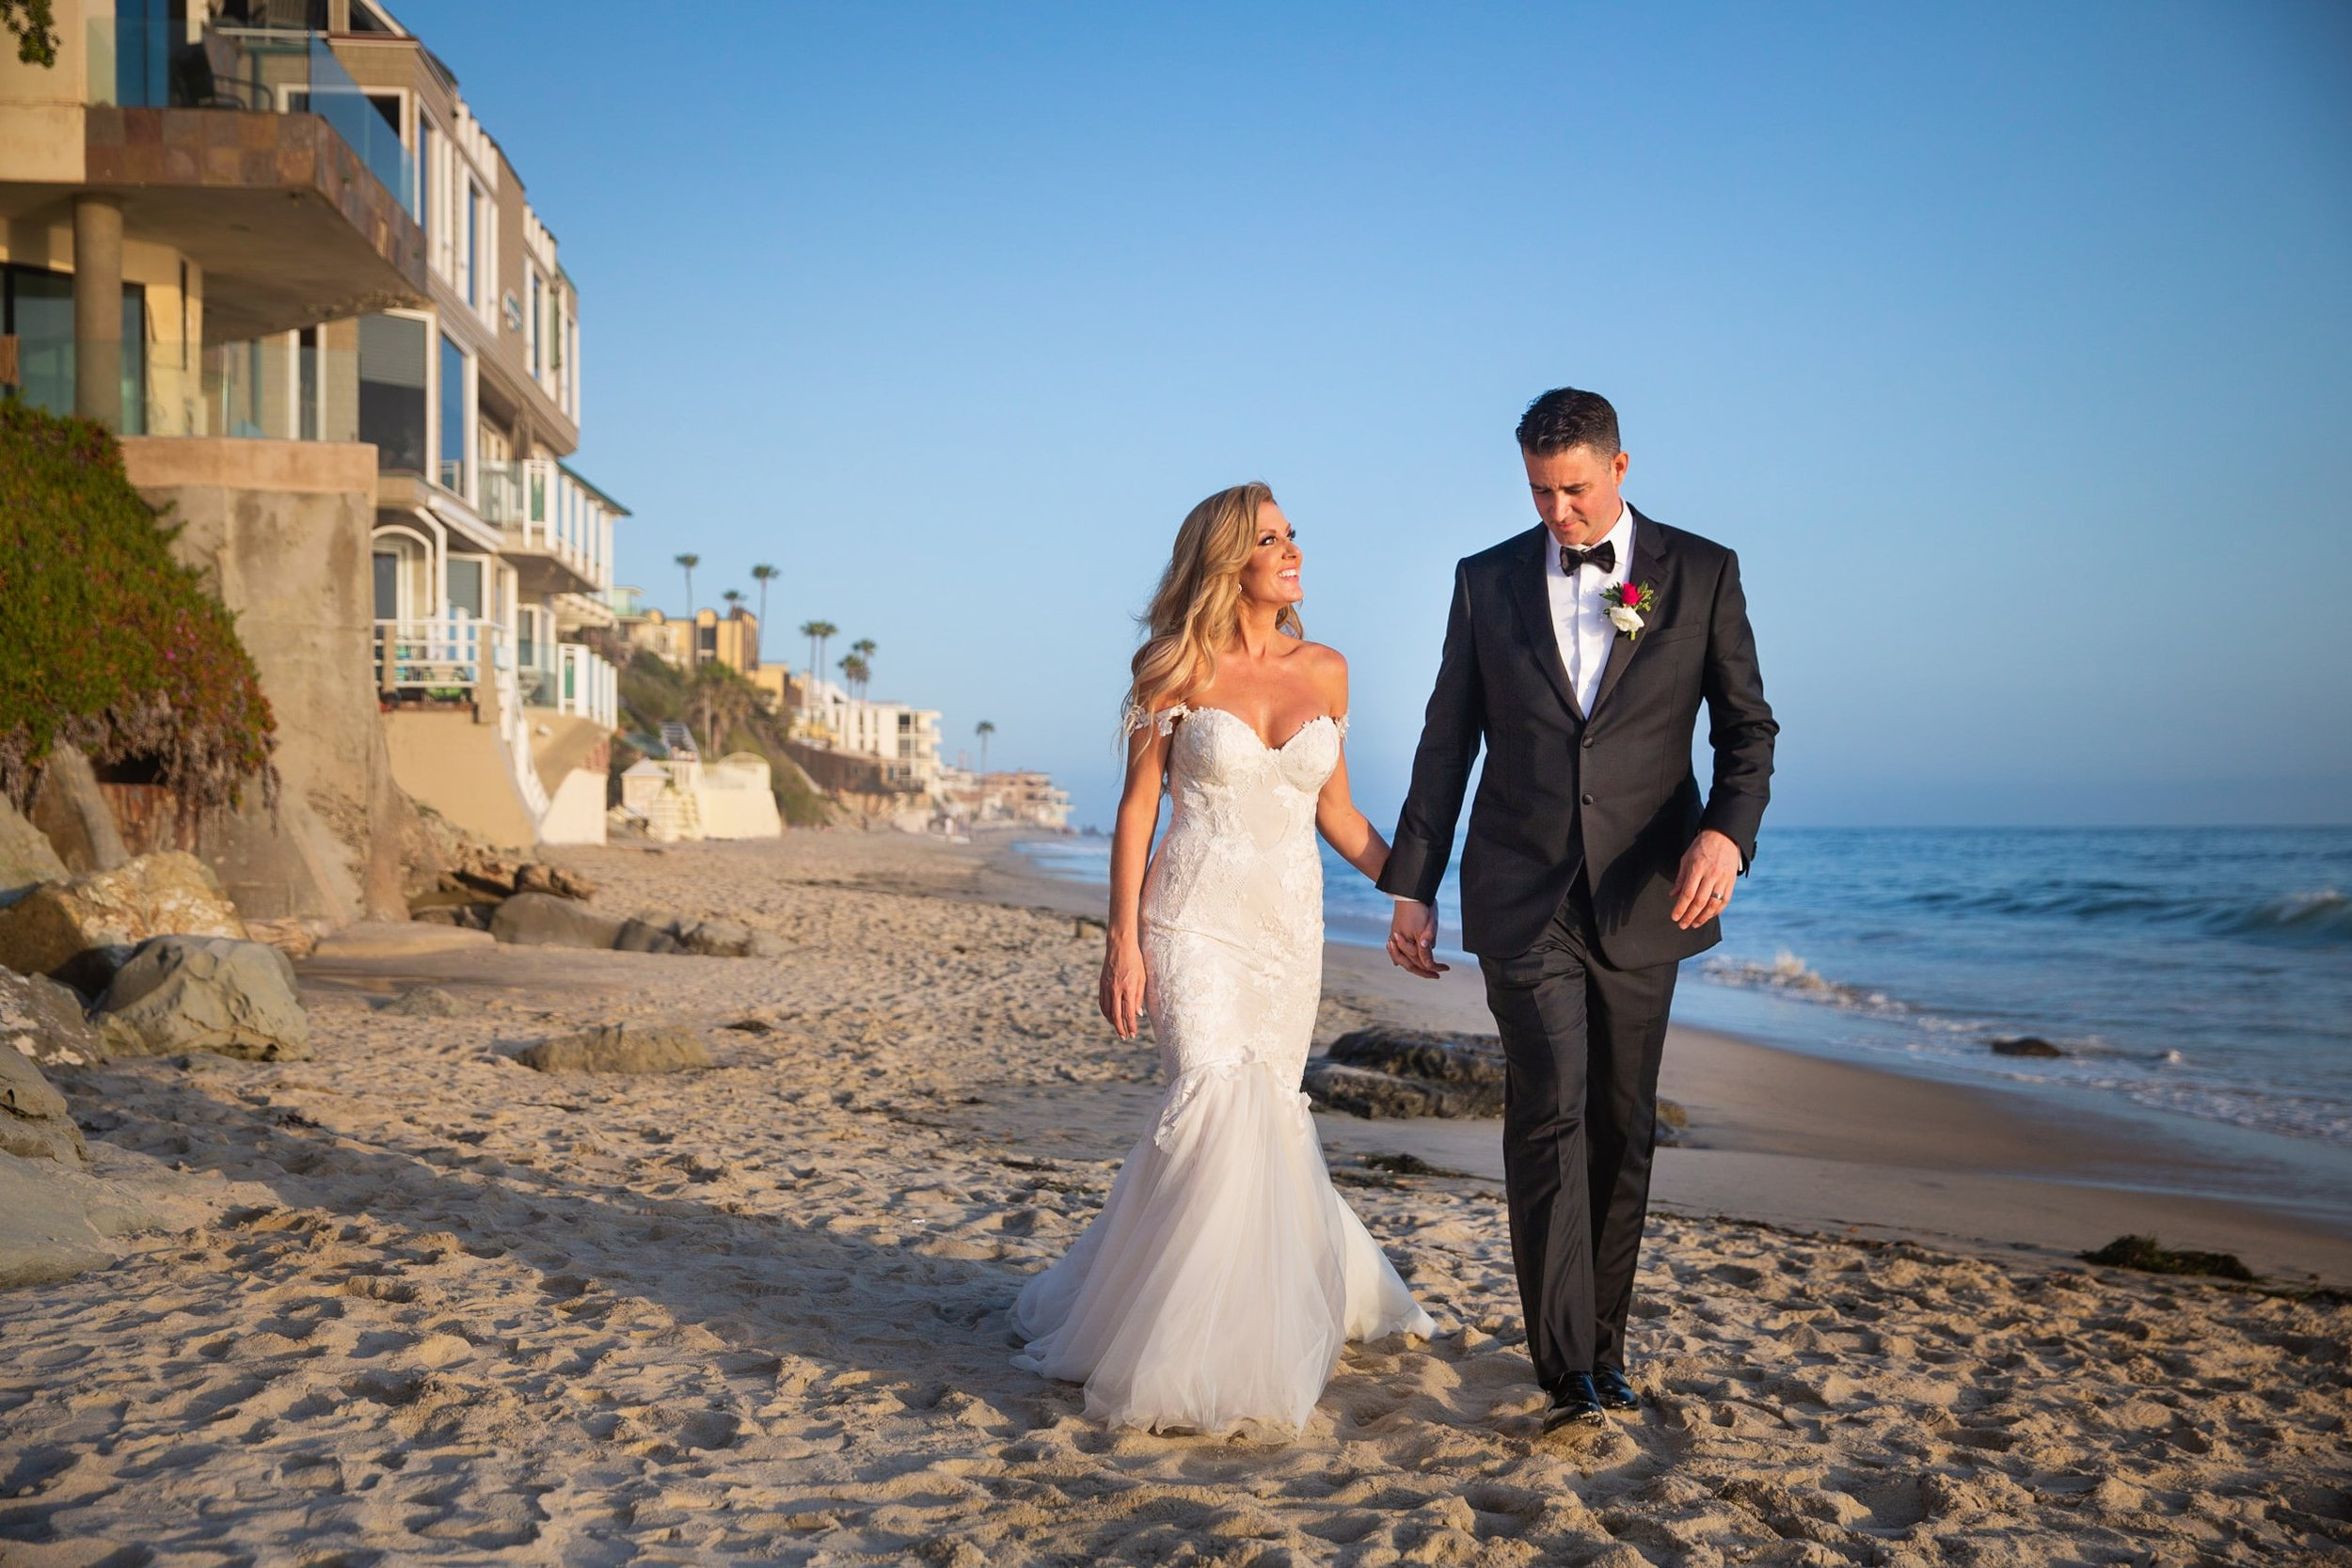 Wedding Photography Packages - Heritage Park, Dana Point, CA - The bride and groom walking hand in hand through the sand with the ocean in the background.